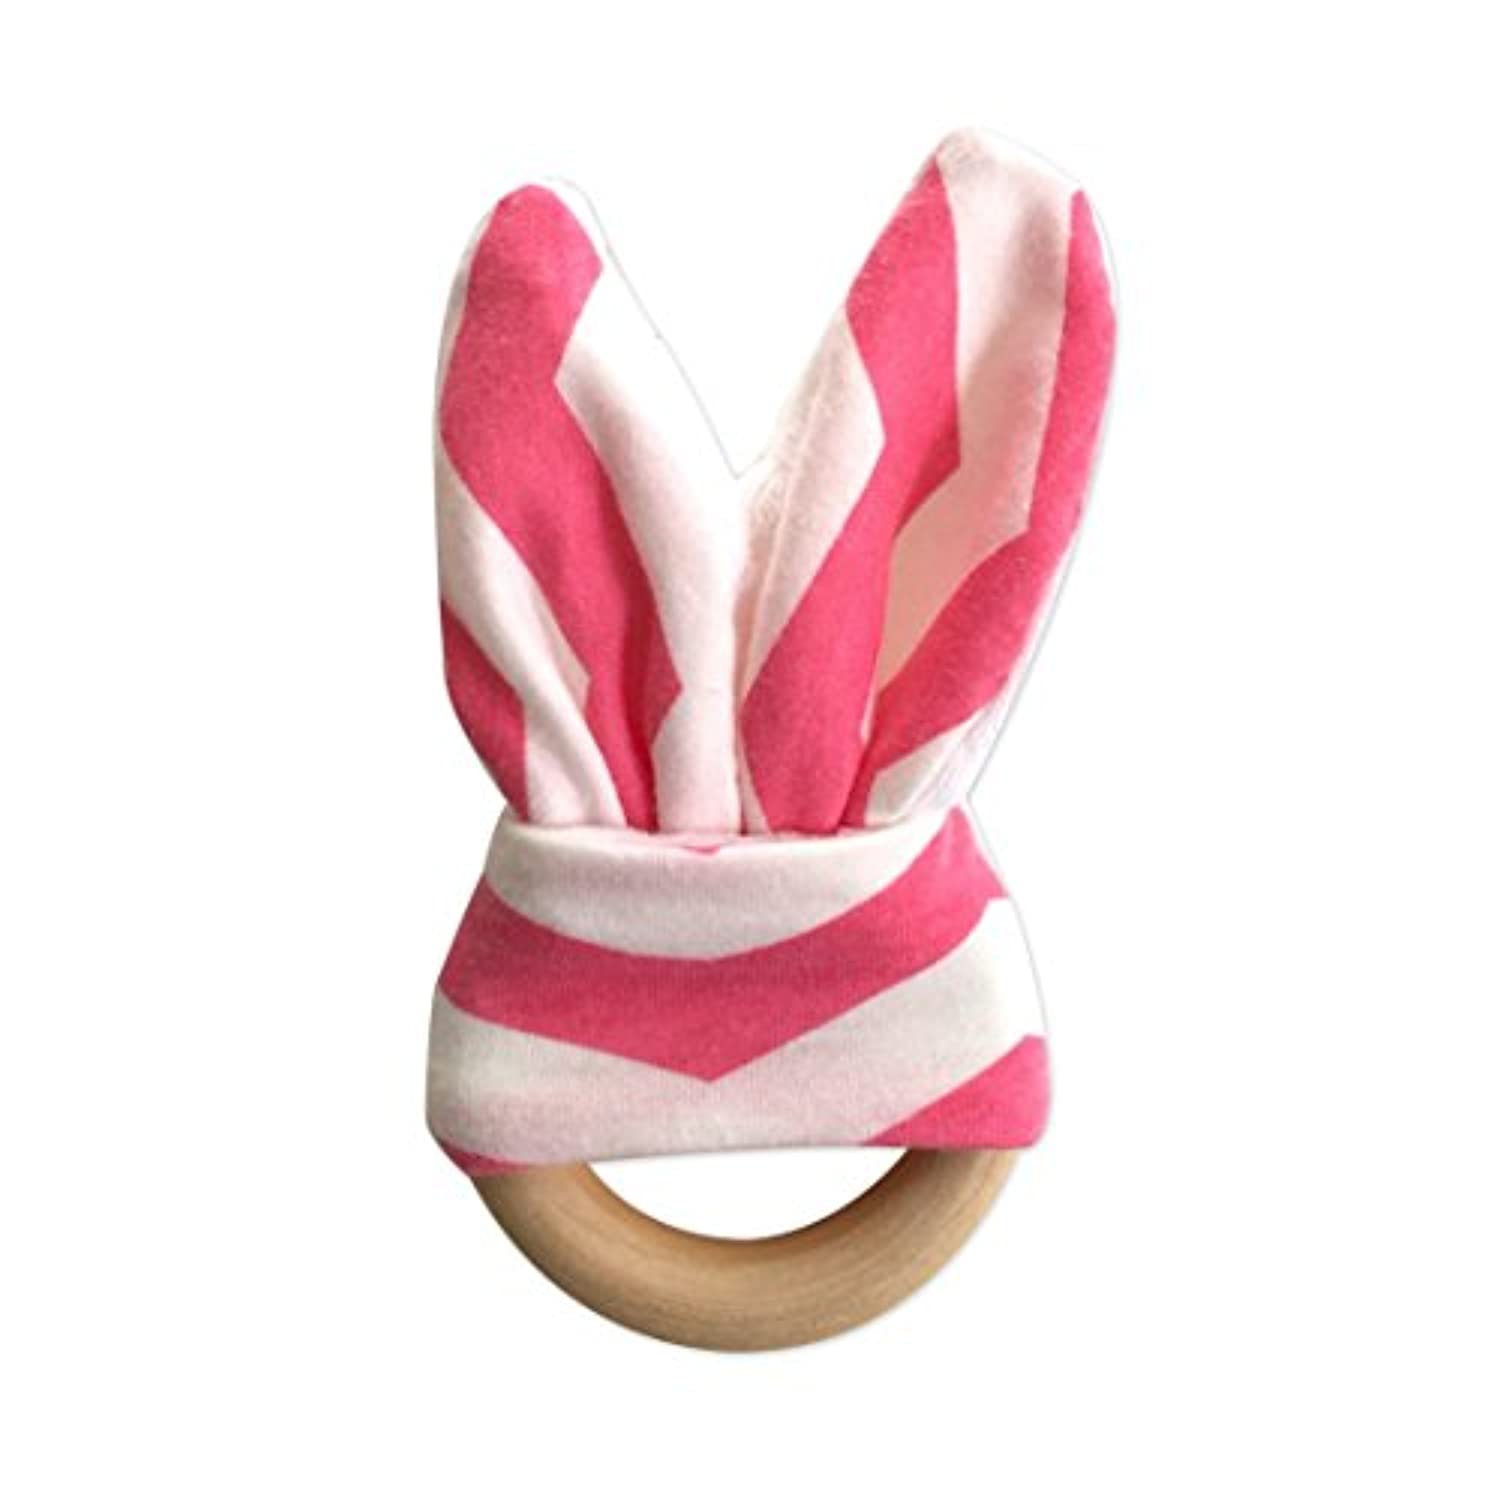 #1 Wooden Teether Ring With Minky Fabric Bunny Ears, Chevron Pink by Ayah Baby